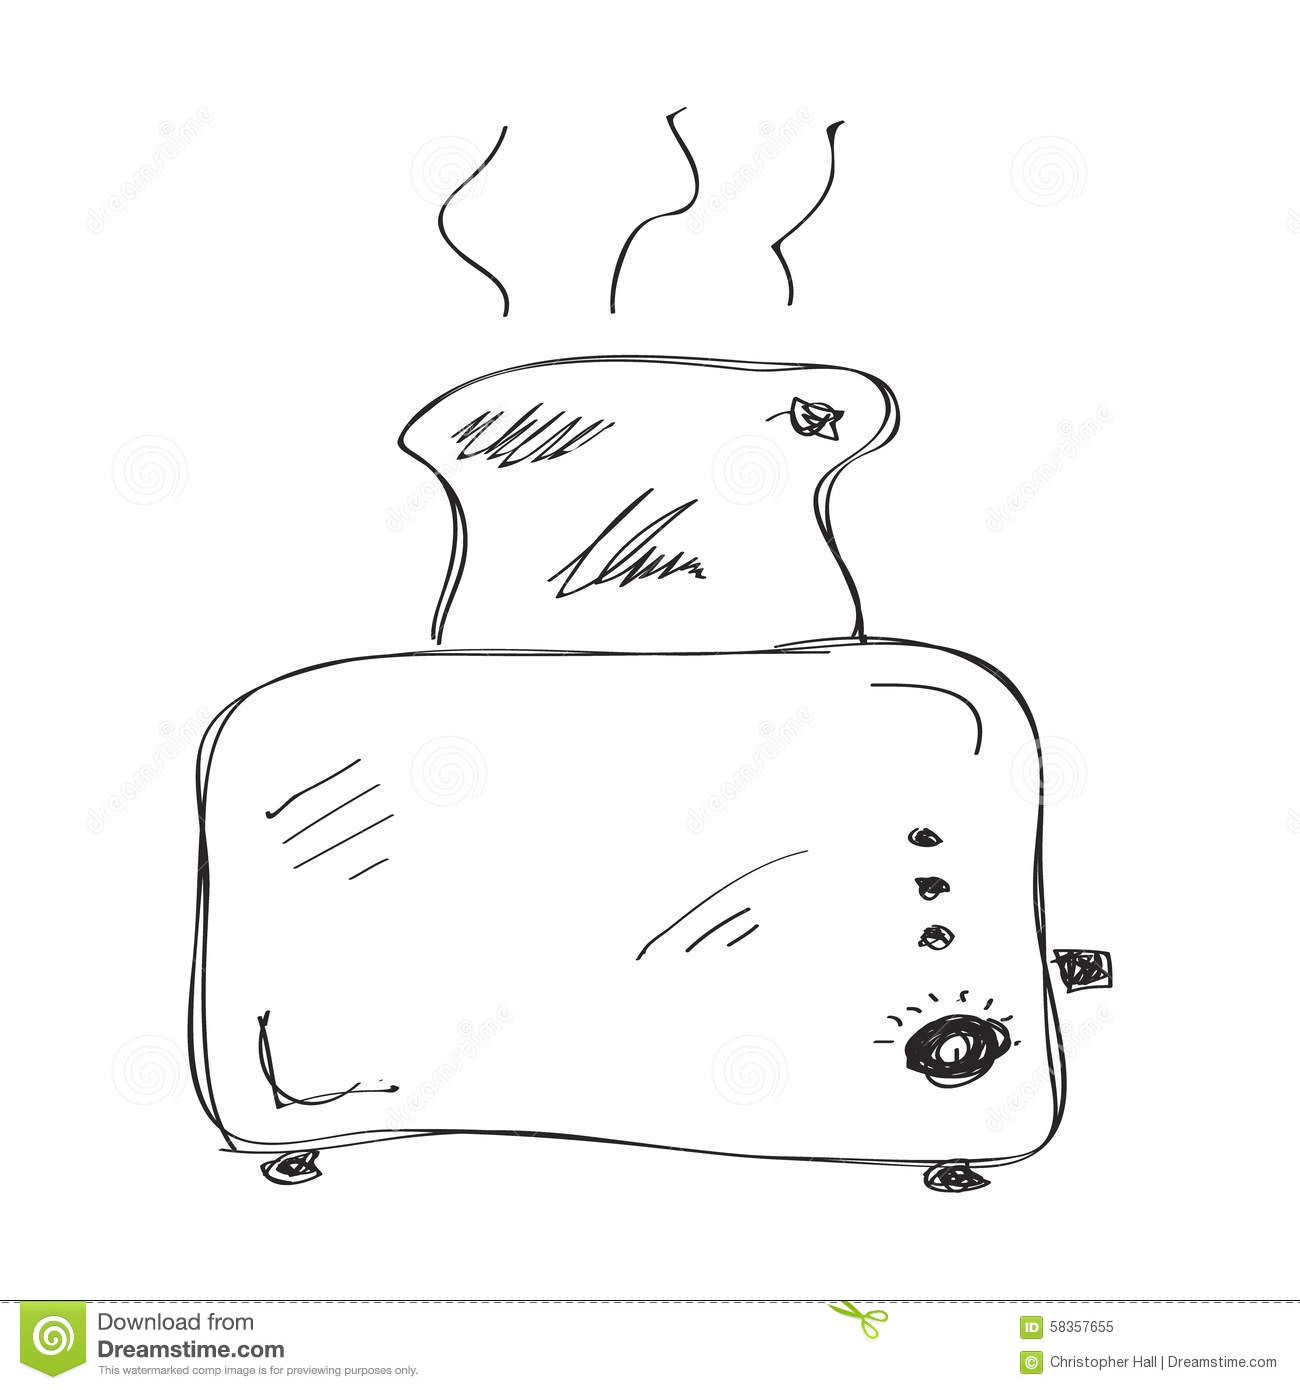 Simple Doodle Of A Toaster Stock Vector Illustration Of Toaster